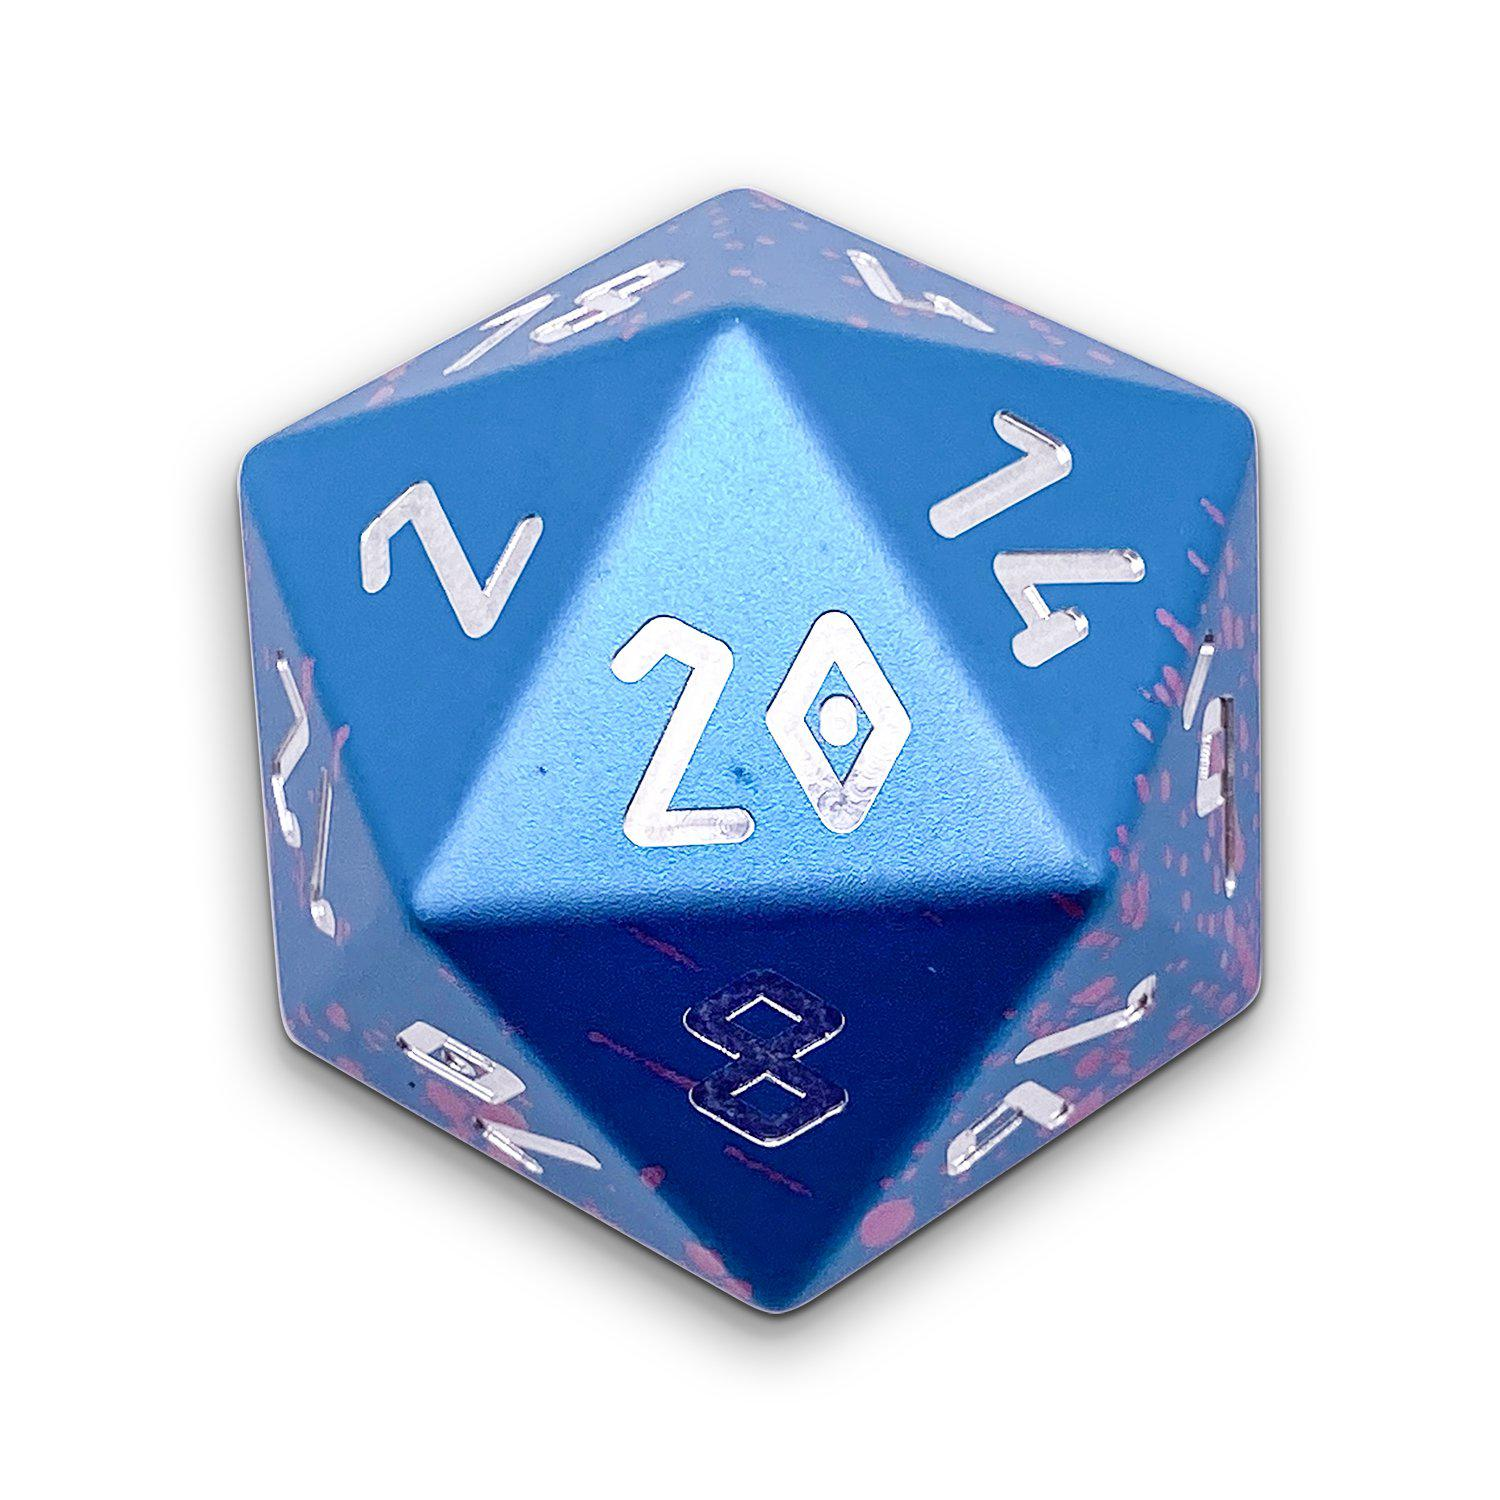 Miami Dice - Single D20 Wondrous 20mm 6063 Aircraft Grade Aluminum Metal Die